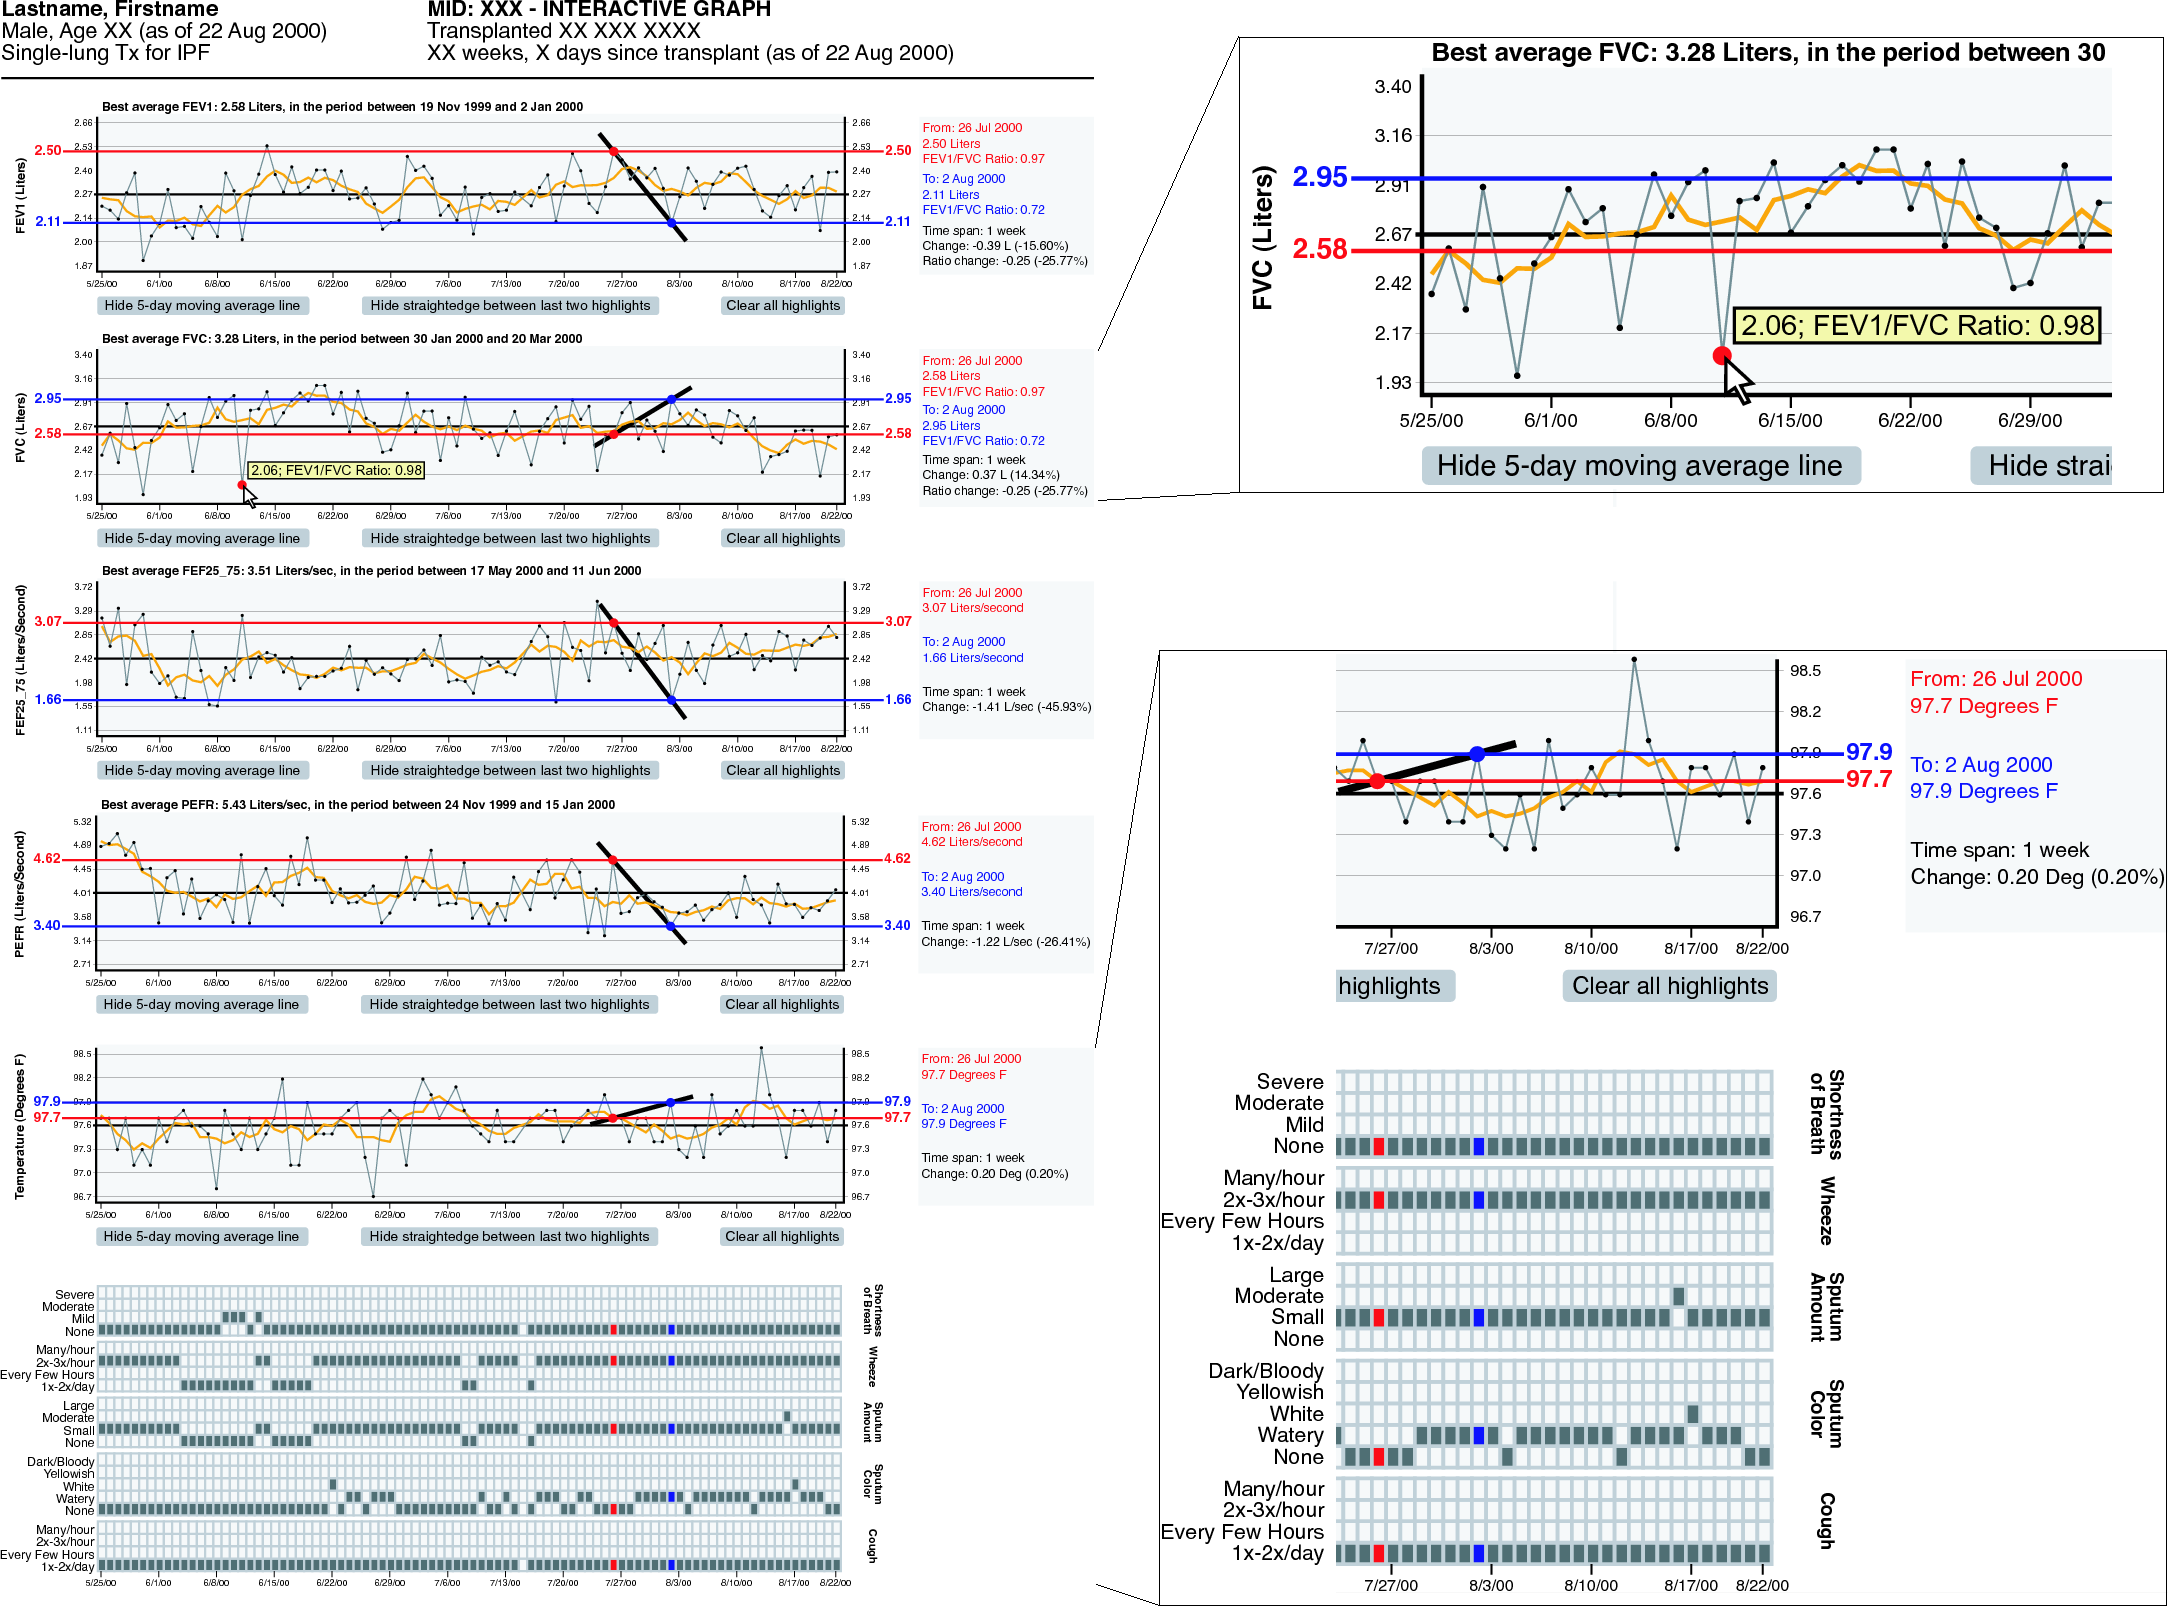 4.1 Visualization of a Single Patient Record 231 Fig. 4.4 Web-based Interactive Visualization System (WBIVS) [107] aligns line plots and matrix plots for lung transplant home monitoring.